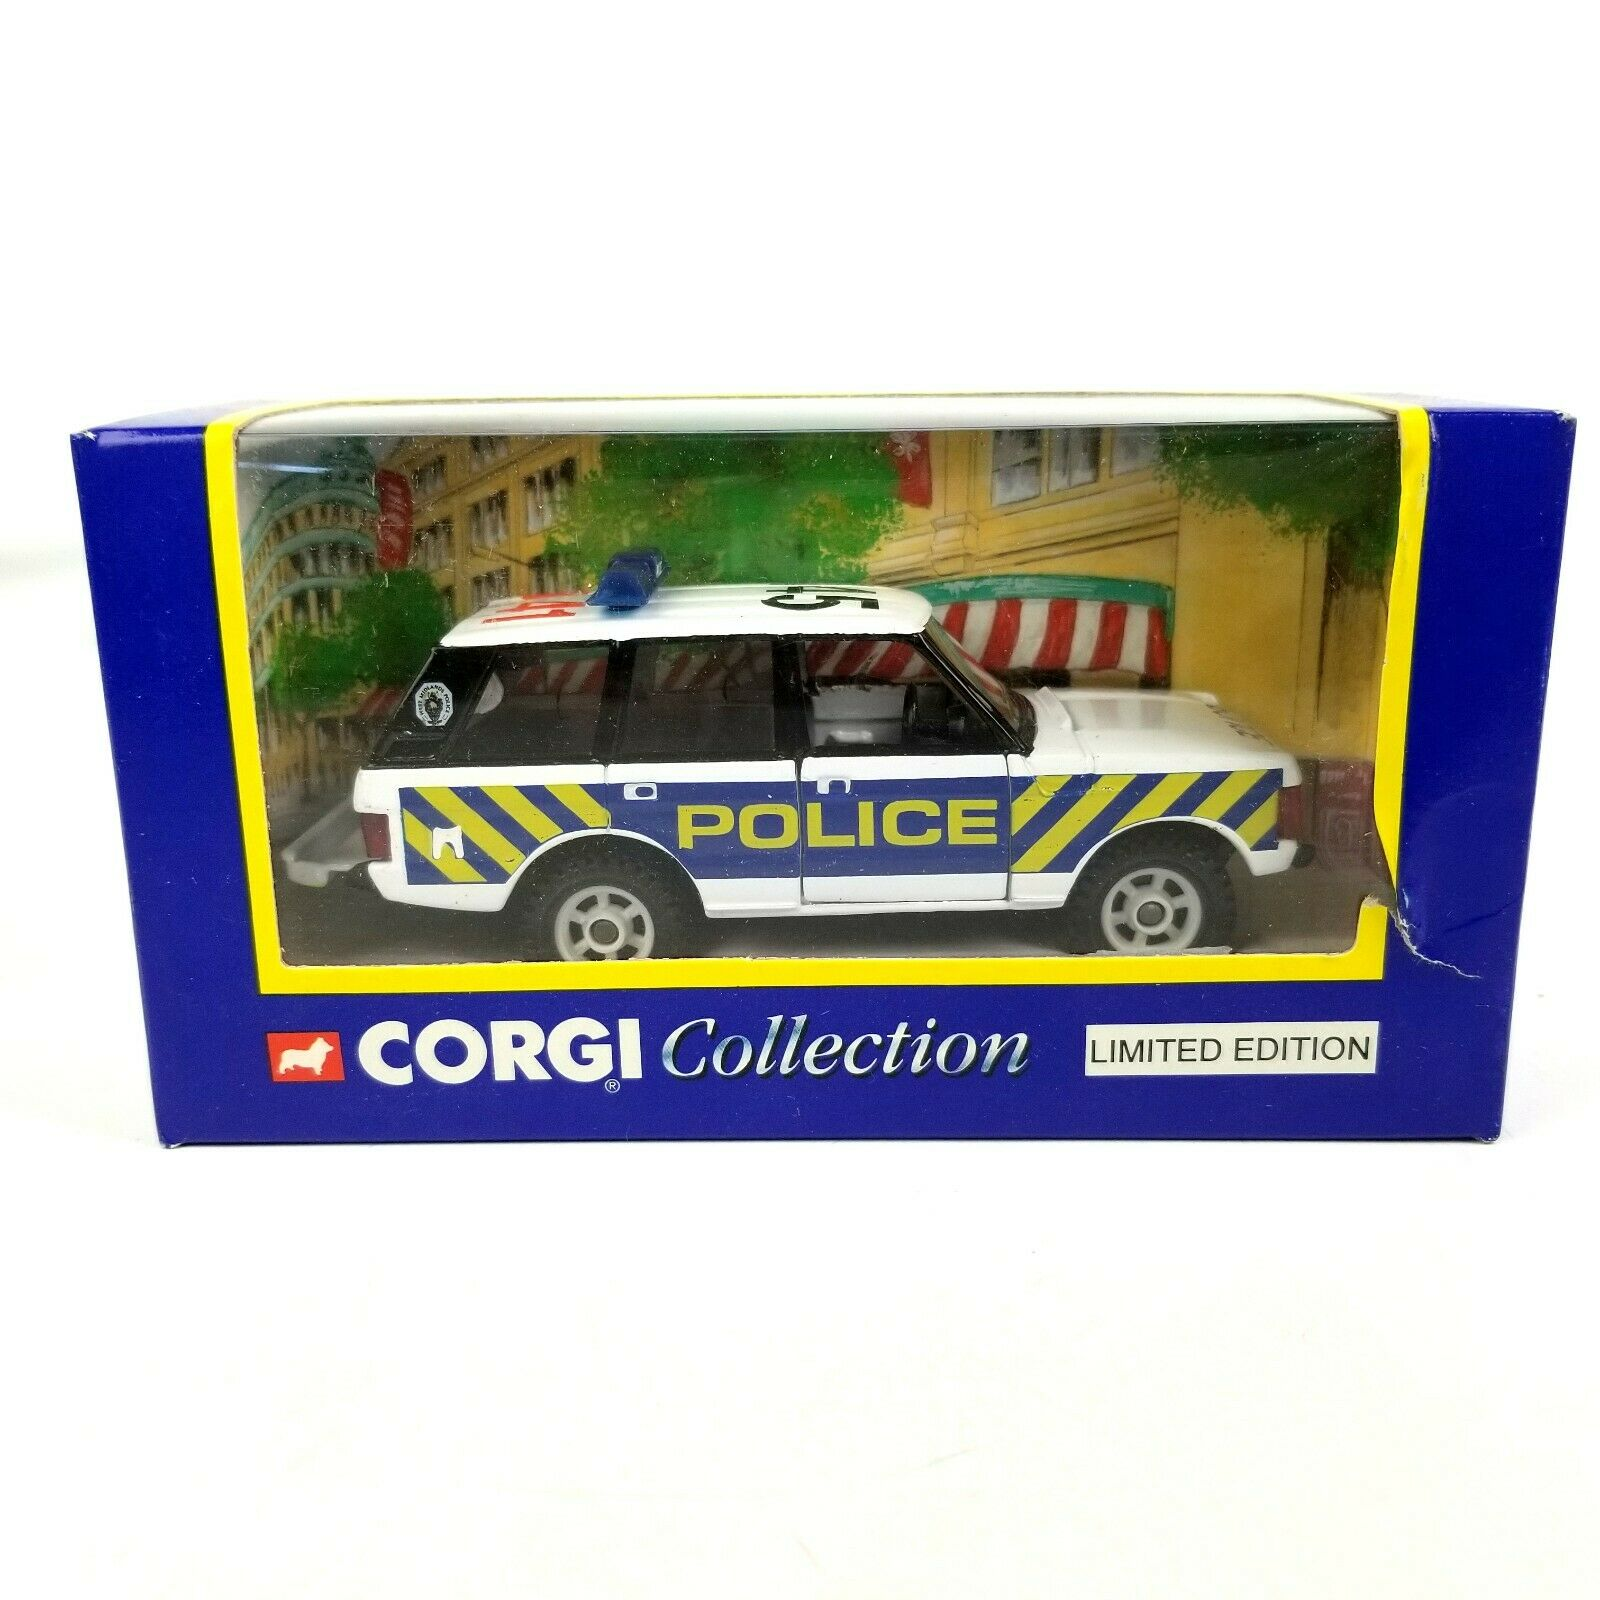 Corgi Collection Range Rover White Diecast Collectible Police Car Replica